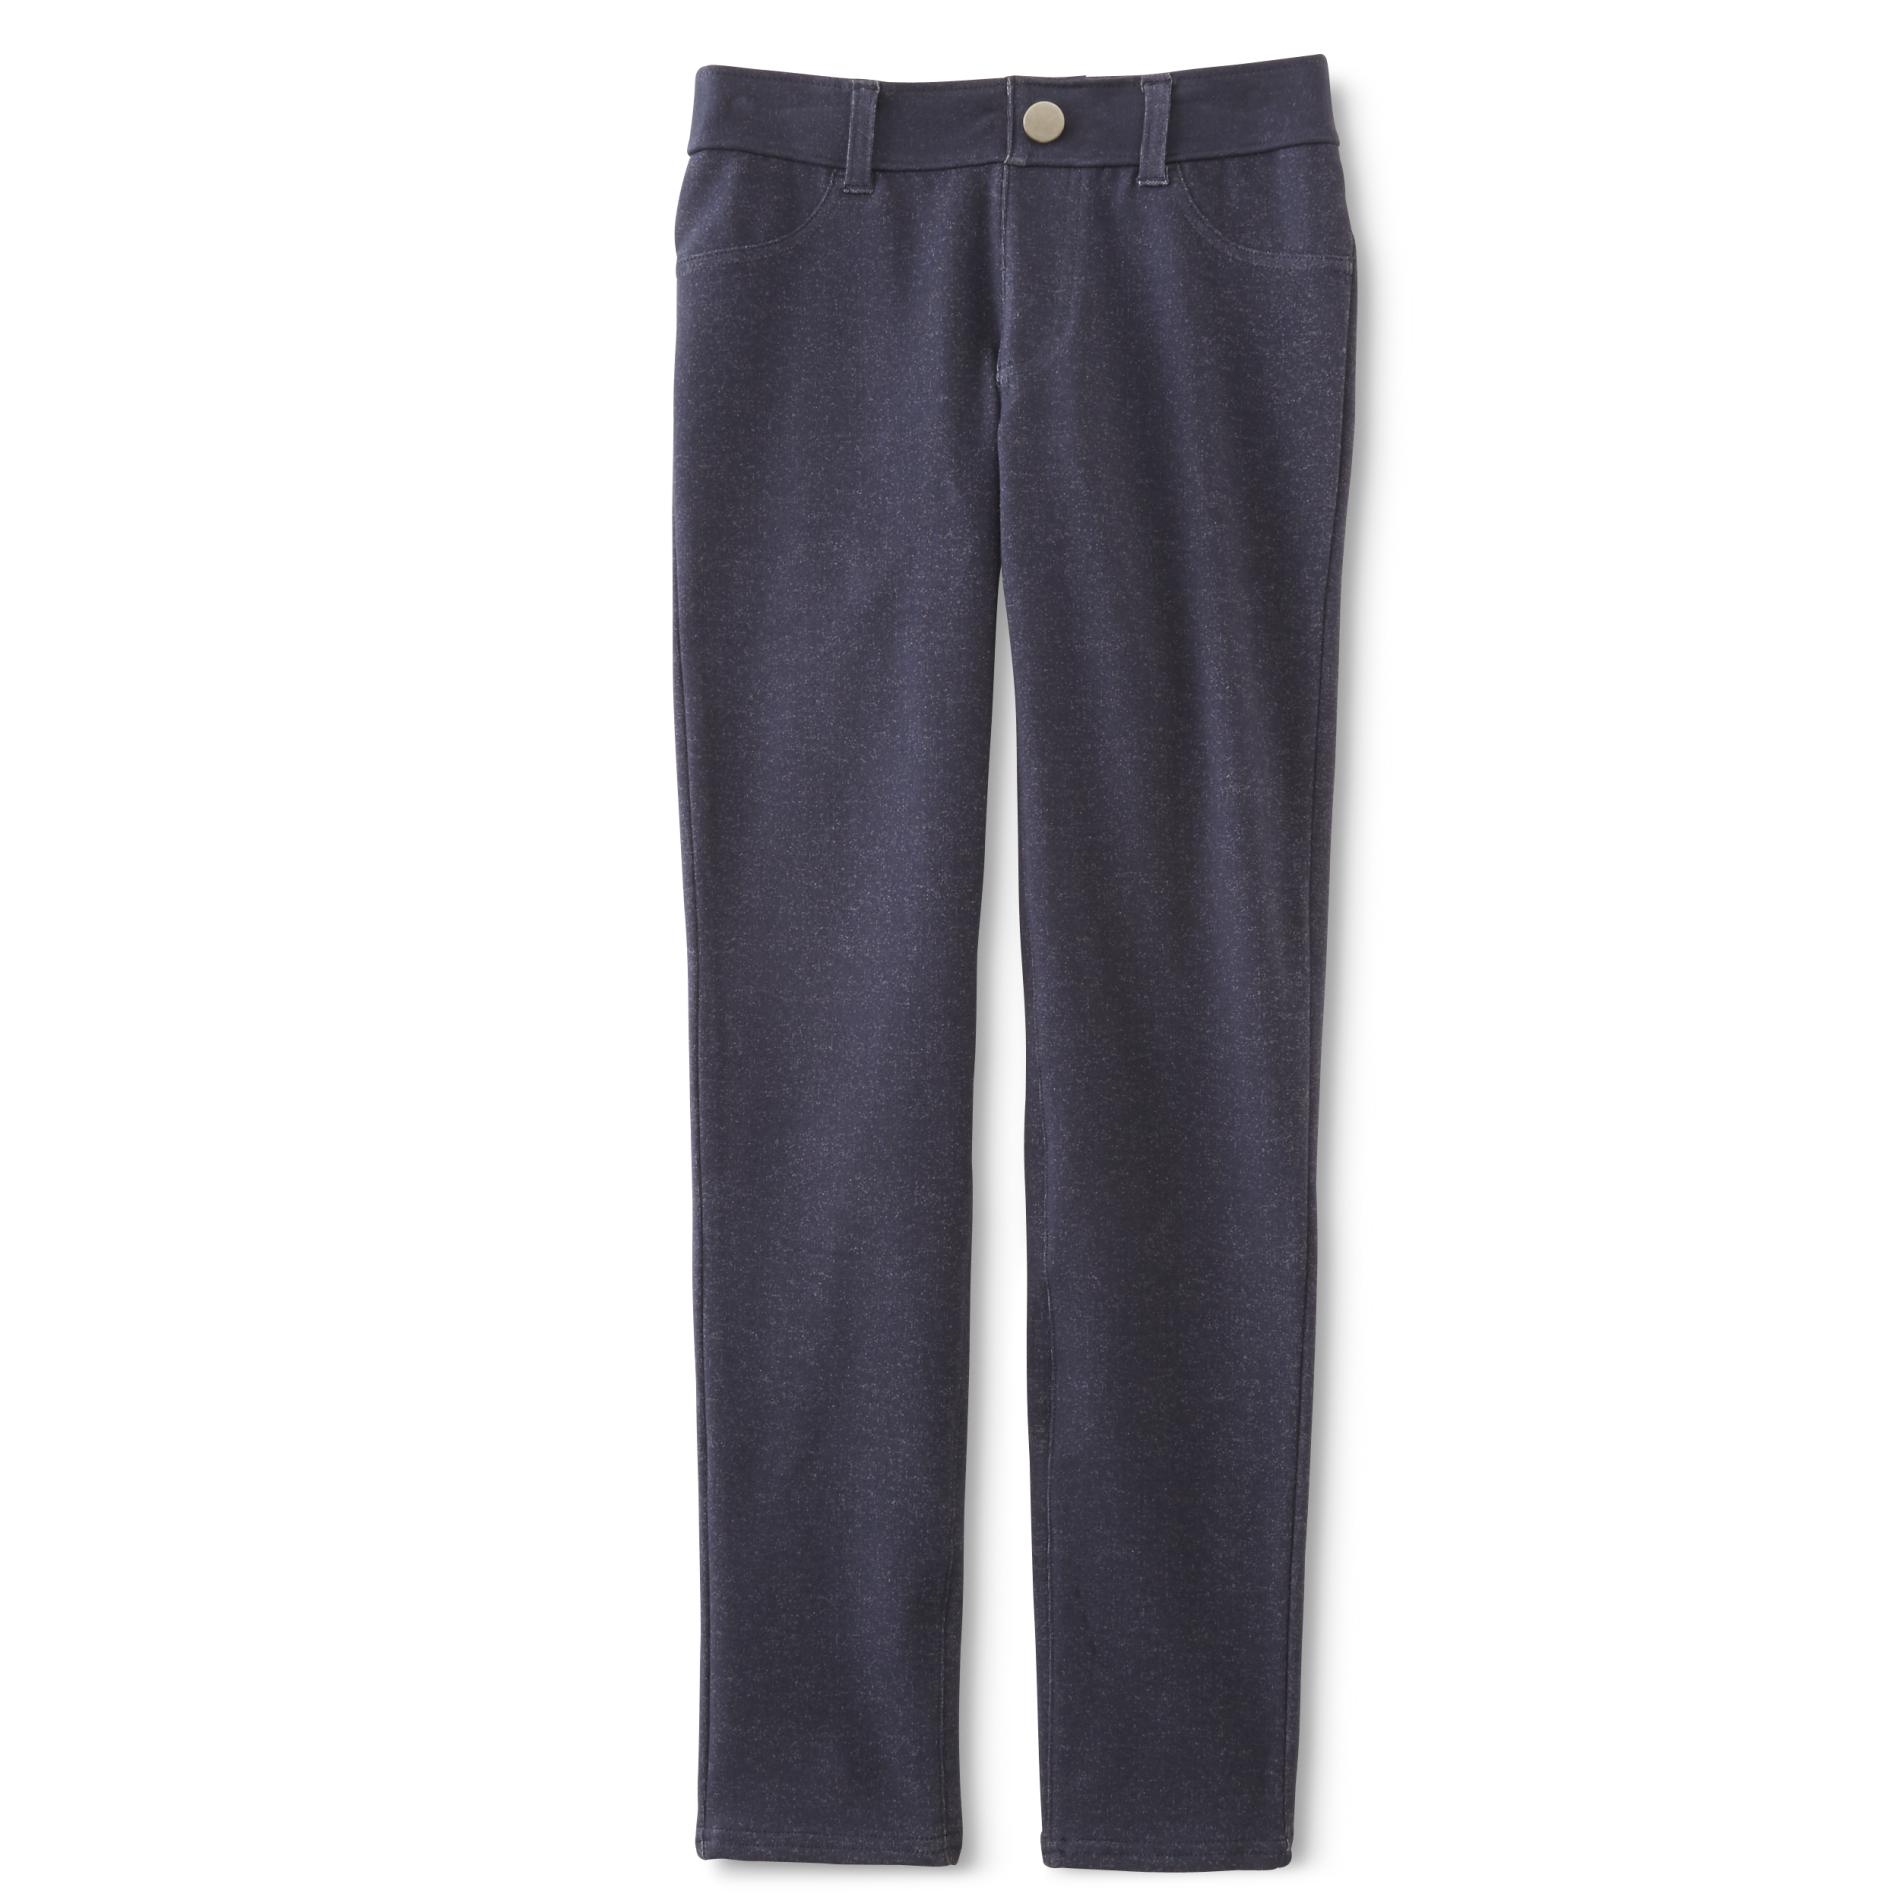 Simply Styled Girl's French Terry Jeggings PartNumber: 077VA88870712P MfgPartNumber: GF6SS32001BG